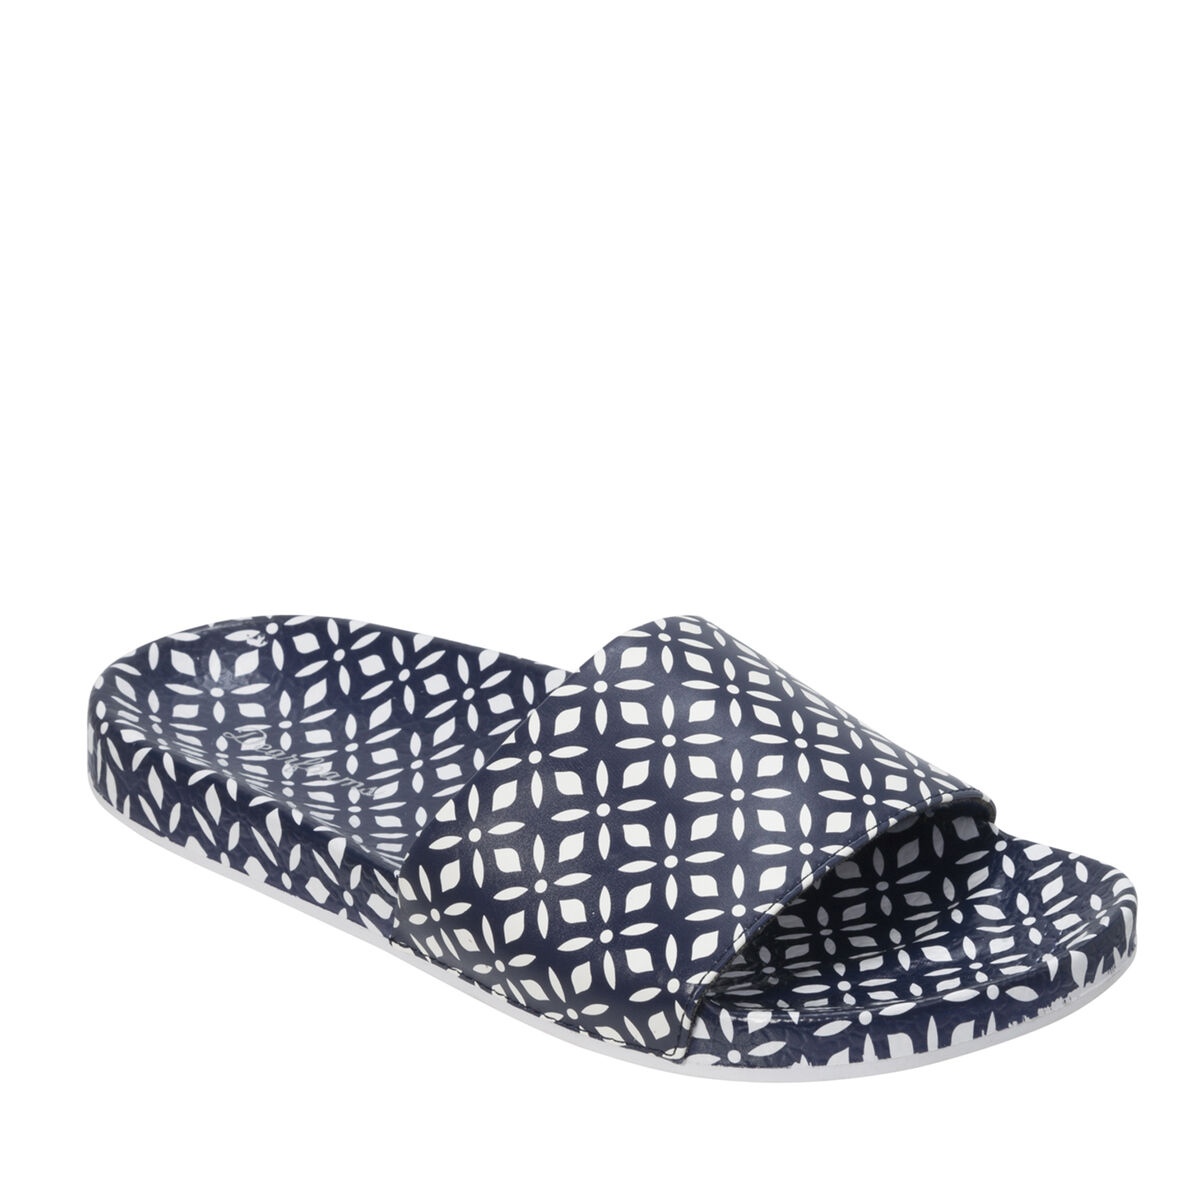 Women's Printed Molded Footbed Slide